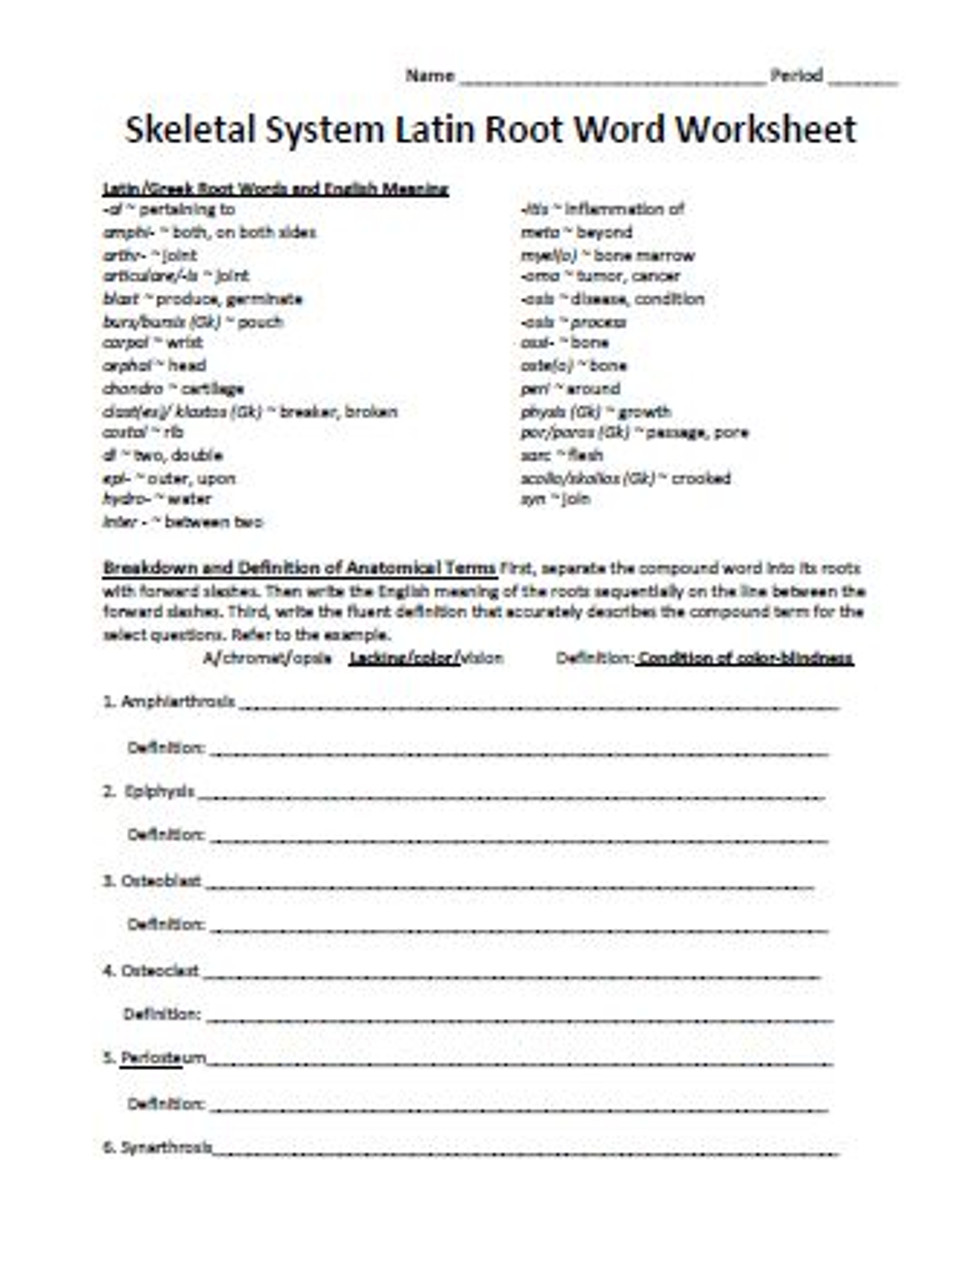 hight resolution of Skeletal System Latin Root Word Worksheet - Amped Up Learning